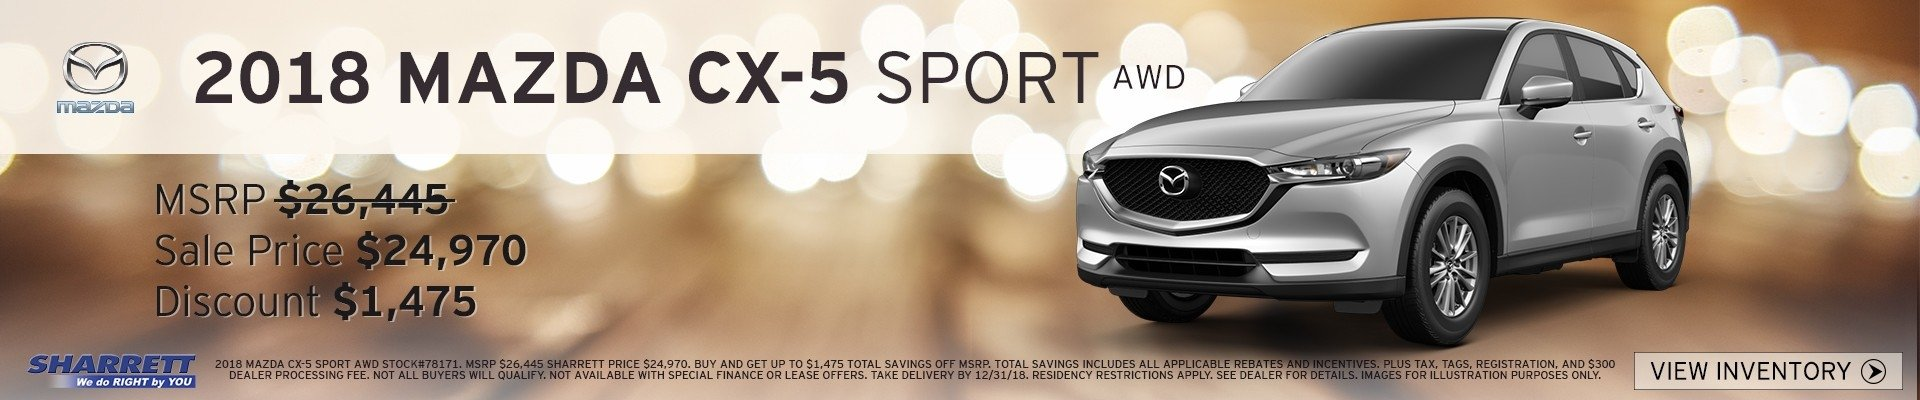 2018 Mazda CX-5 Sport up to $1,475 off MSRP